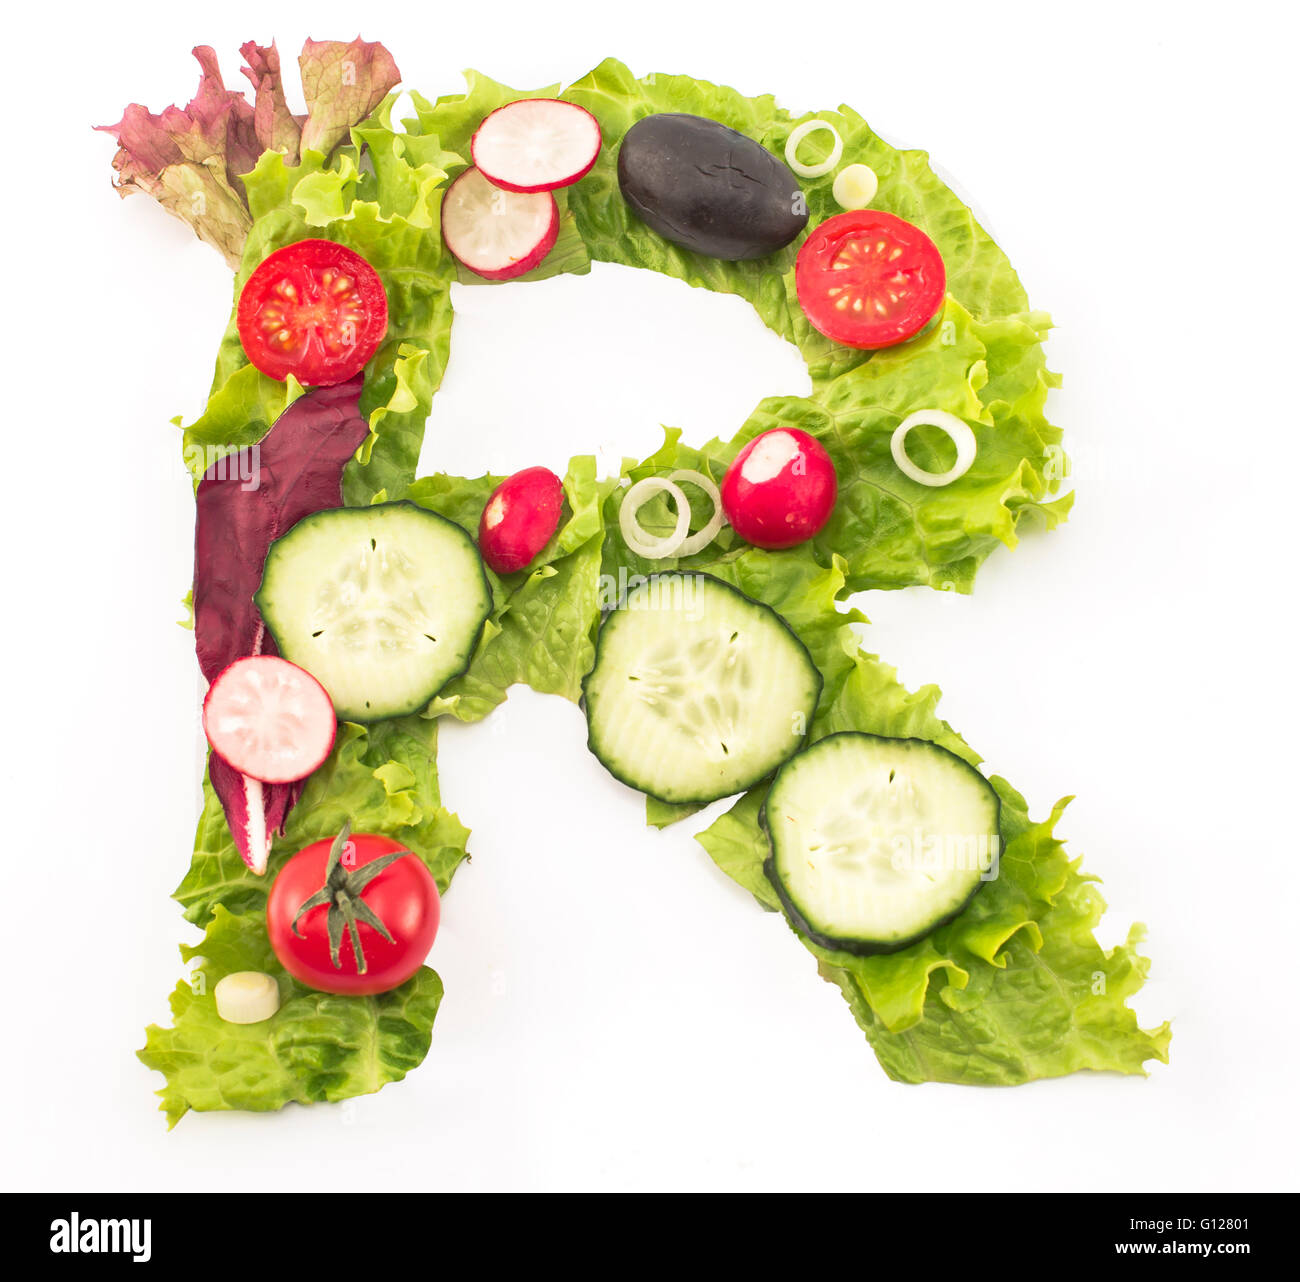 letter made salad stock photos letter made salad stock images alamy